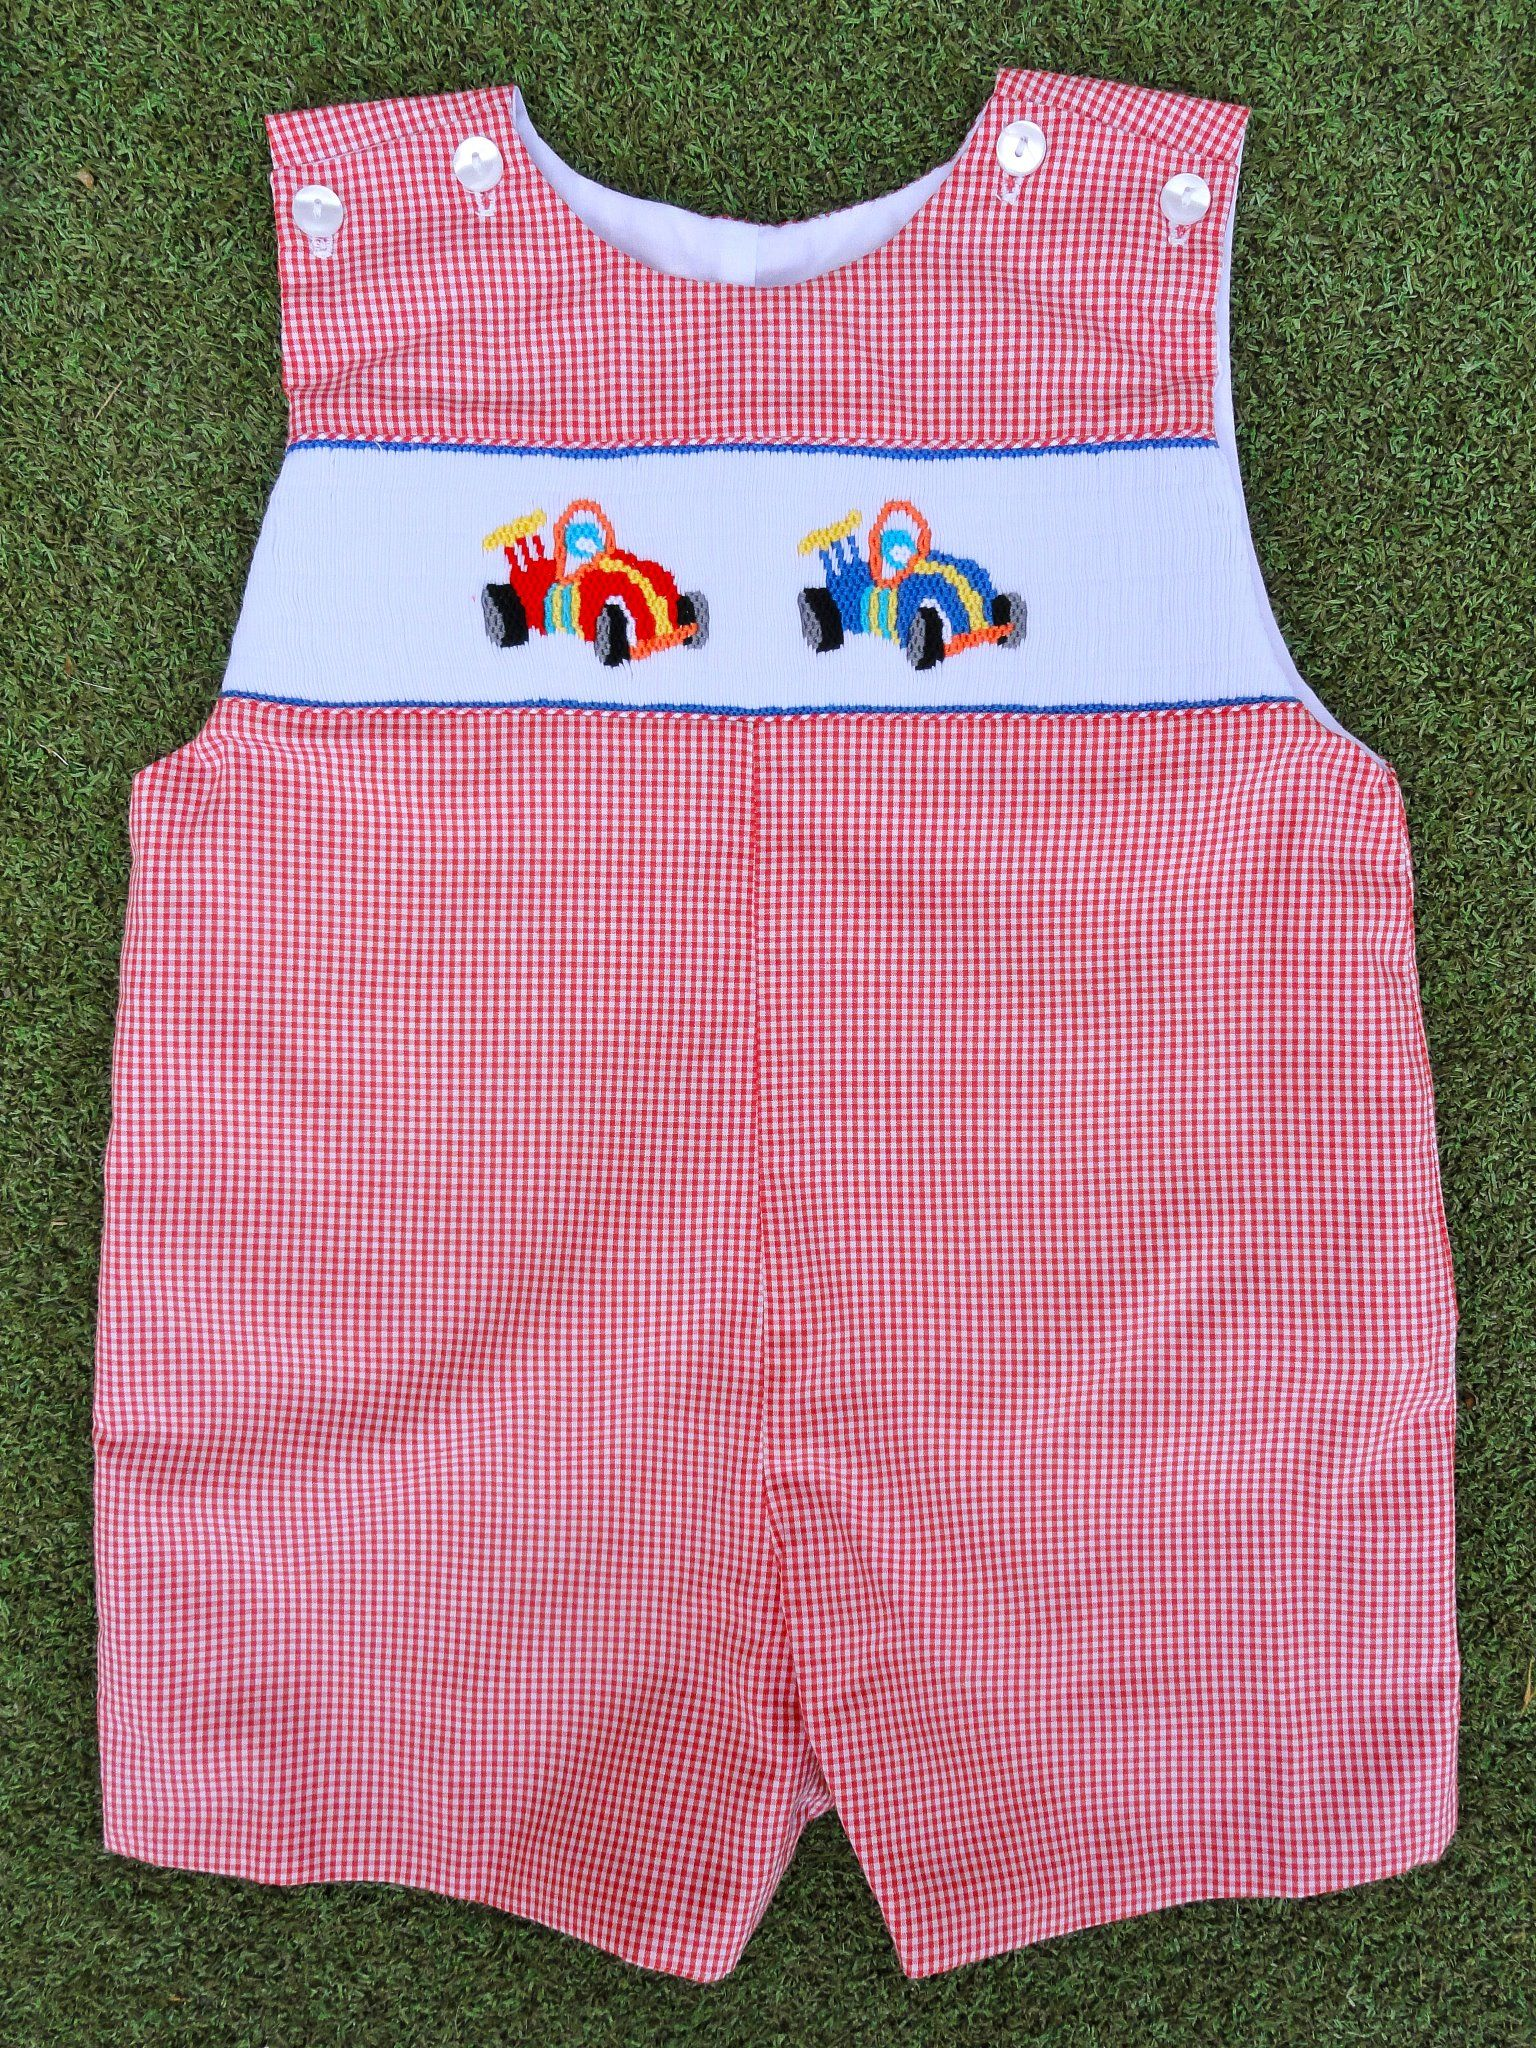 My Little Chick Newborn Baby Boys Smocked Short Summer Romper with Hat Cars